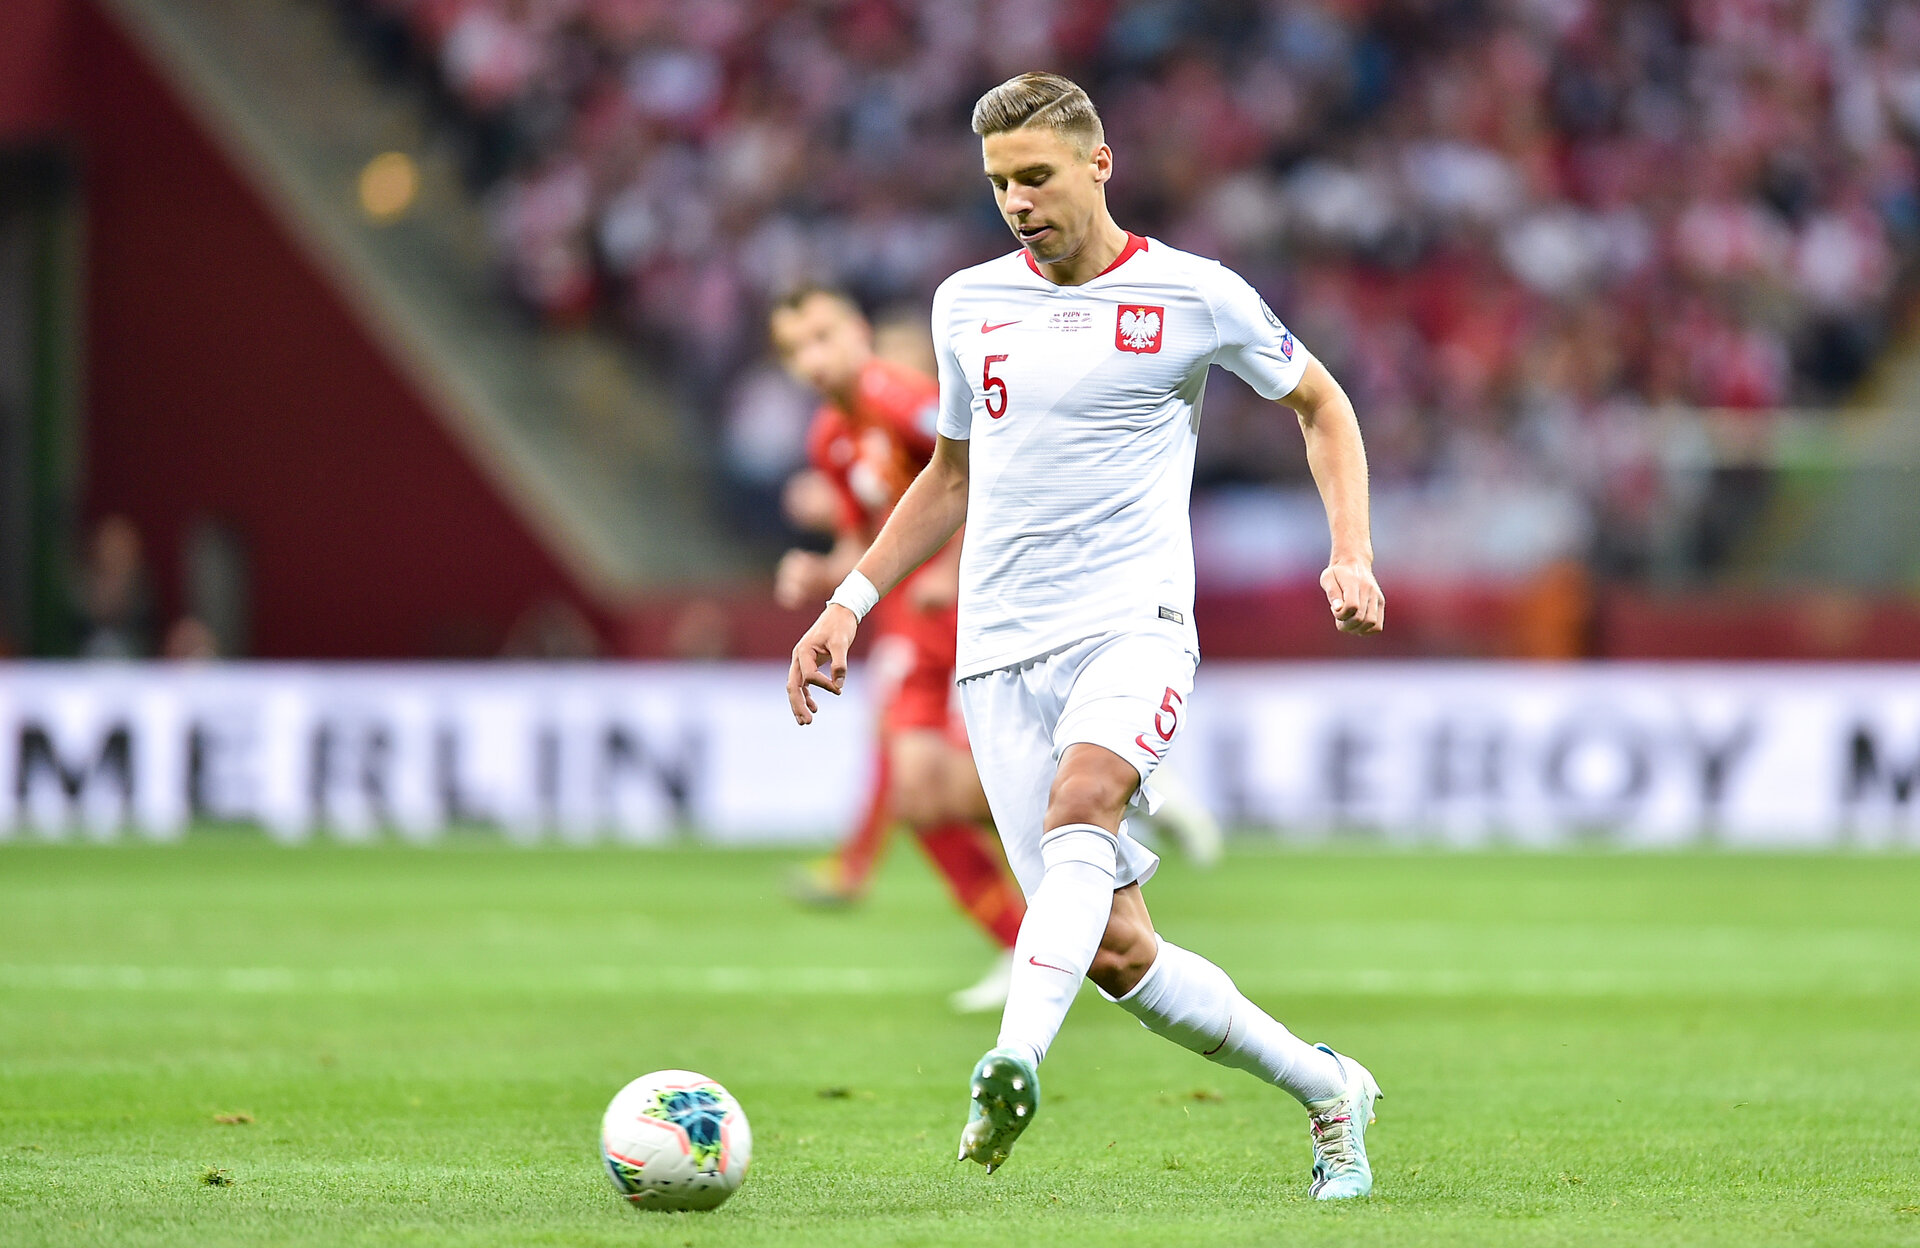 WARSAW, POLAND - OCTOBER 13: Jan Bednarek of Poland in action during the UEFA Euro 2020 qualifier between Poland and North Macedonia on October 13, 2019 in Warsaw, Poland. (Photo by PressFocus/MB Media/Getty Images)